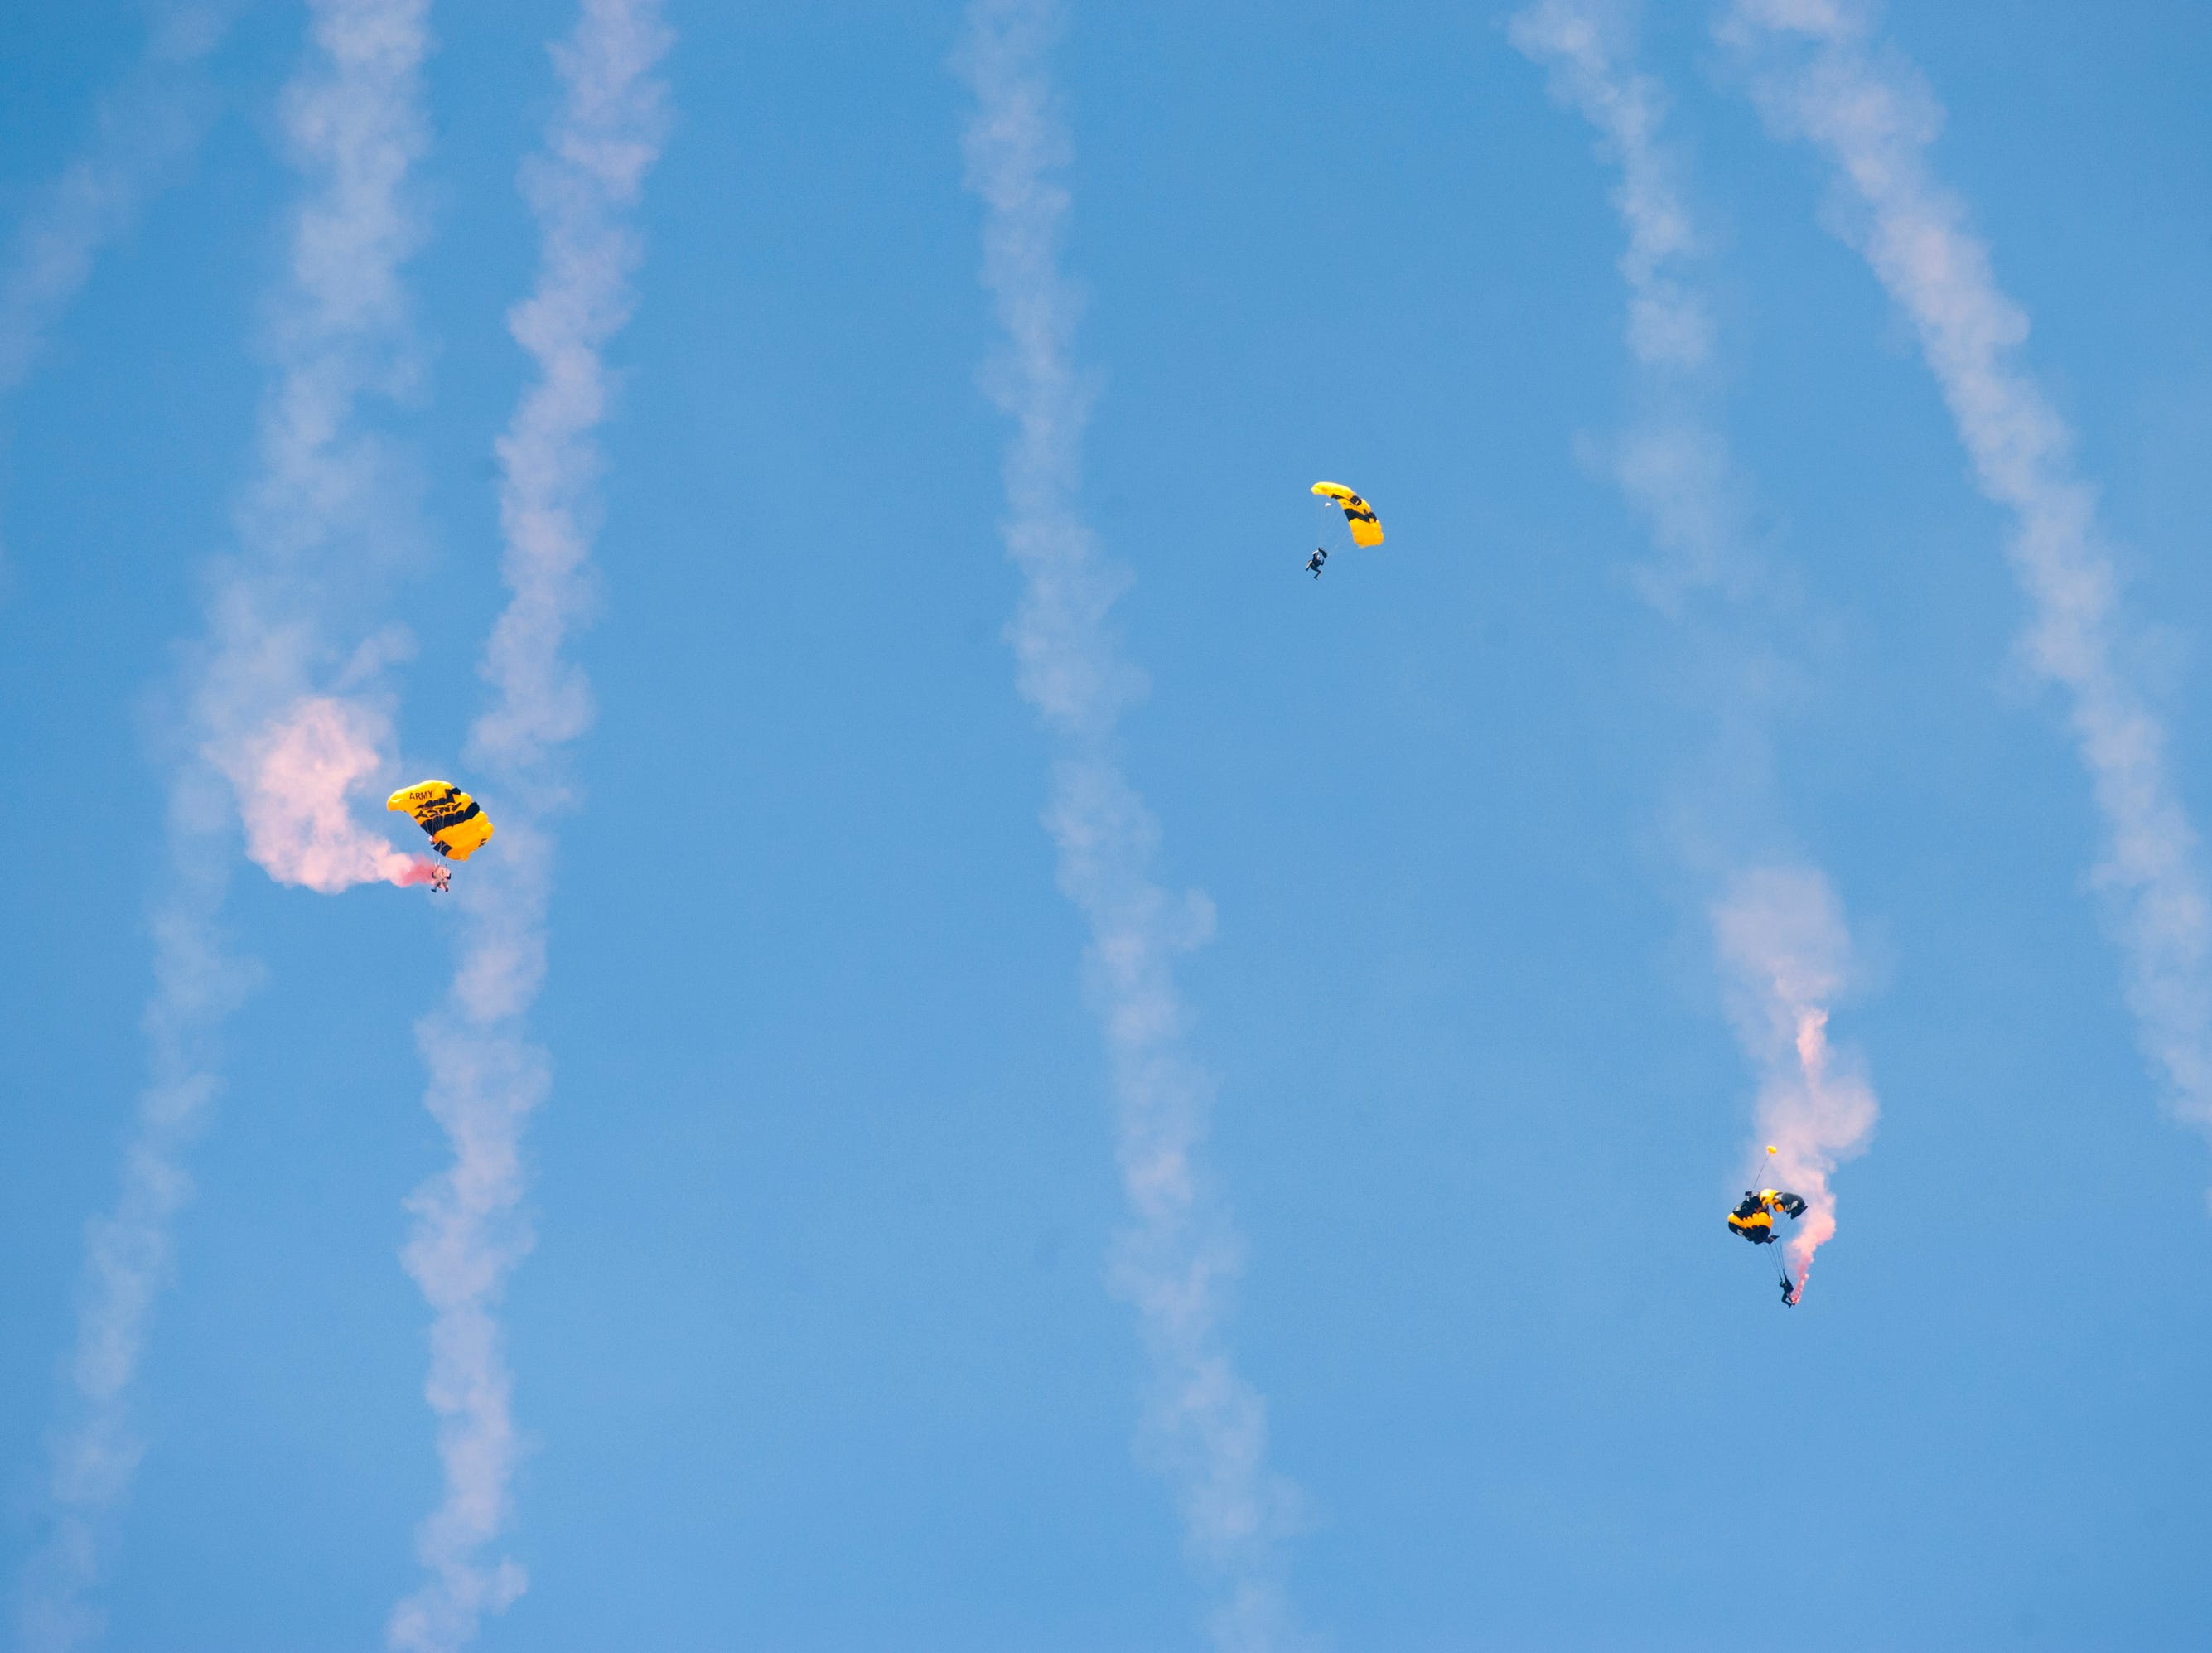 The U.S. Army Golden Knights parachute toward the Ohio River at the 2019 Thunder Over Louisville Air Show.13 April 2019